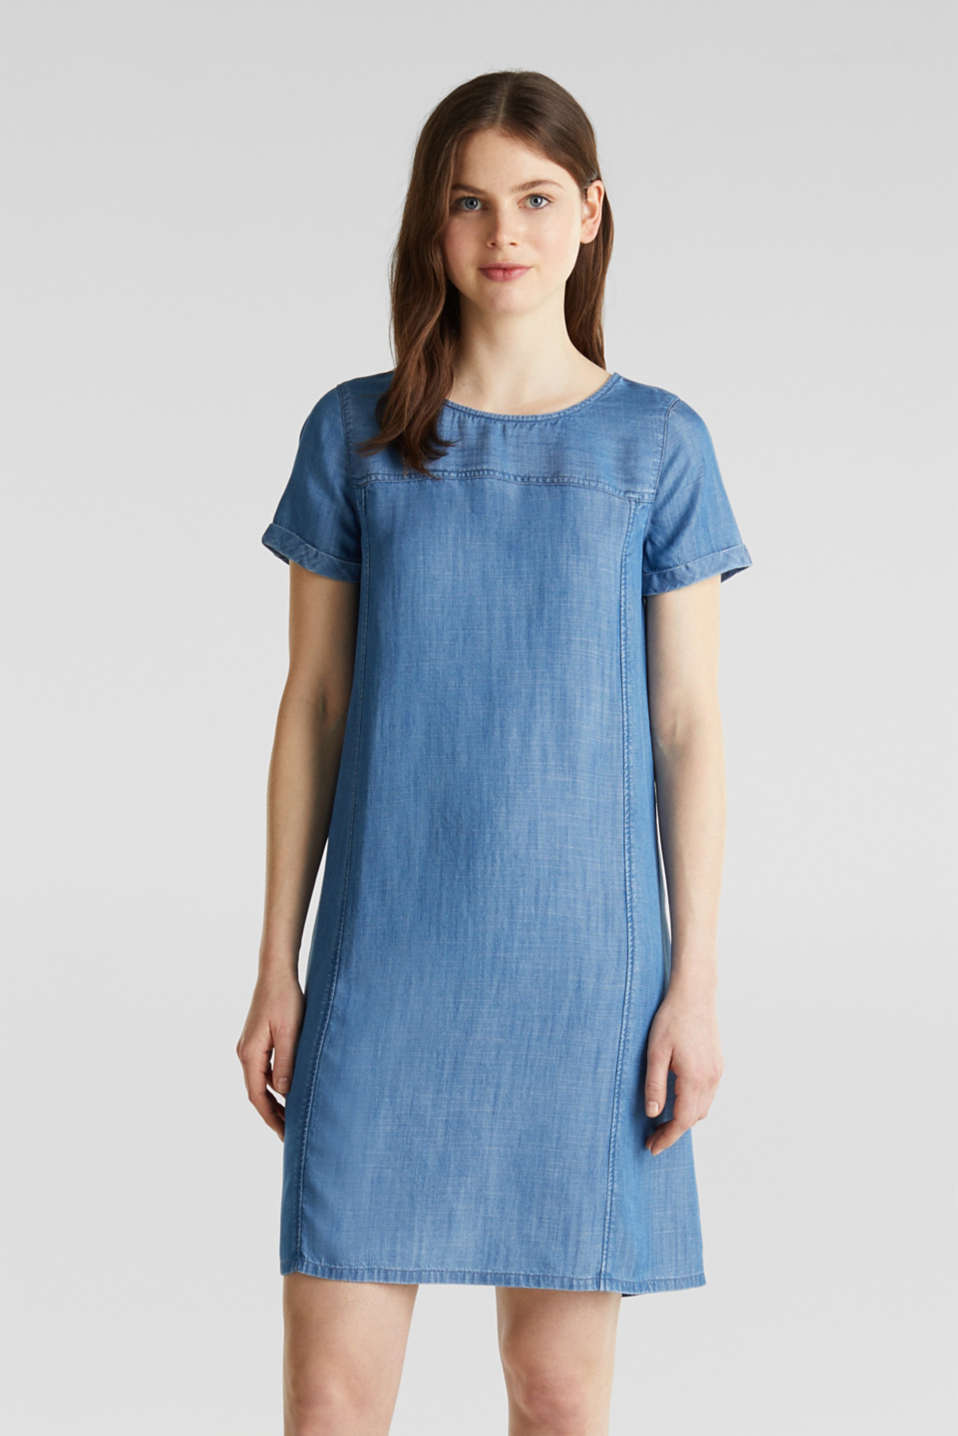 Esprit - In TENCEL™: Abito in denim dalla linea ad A